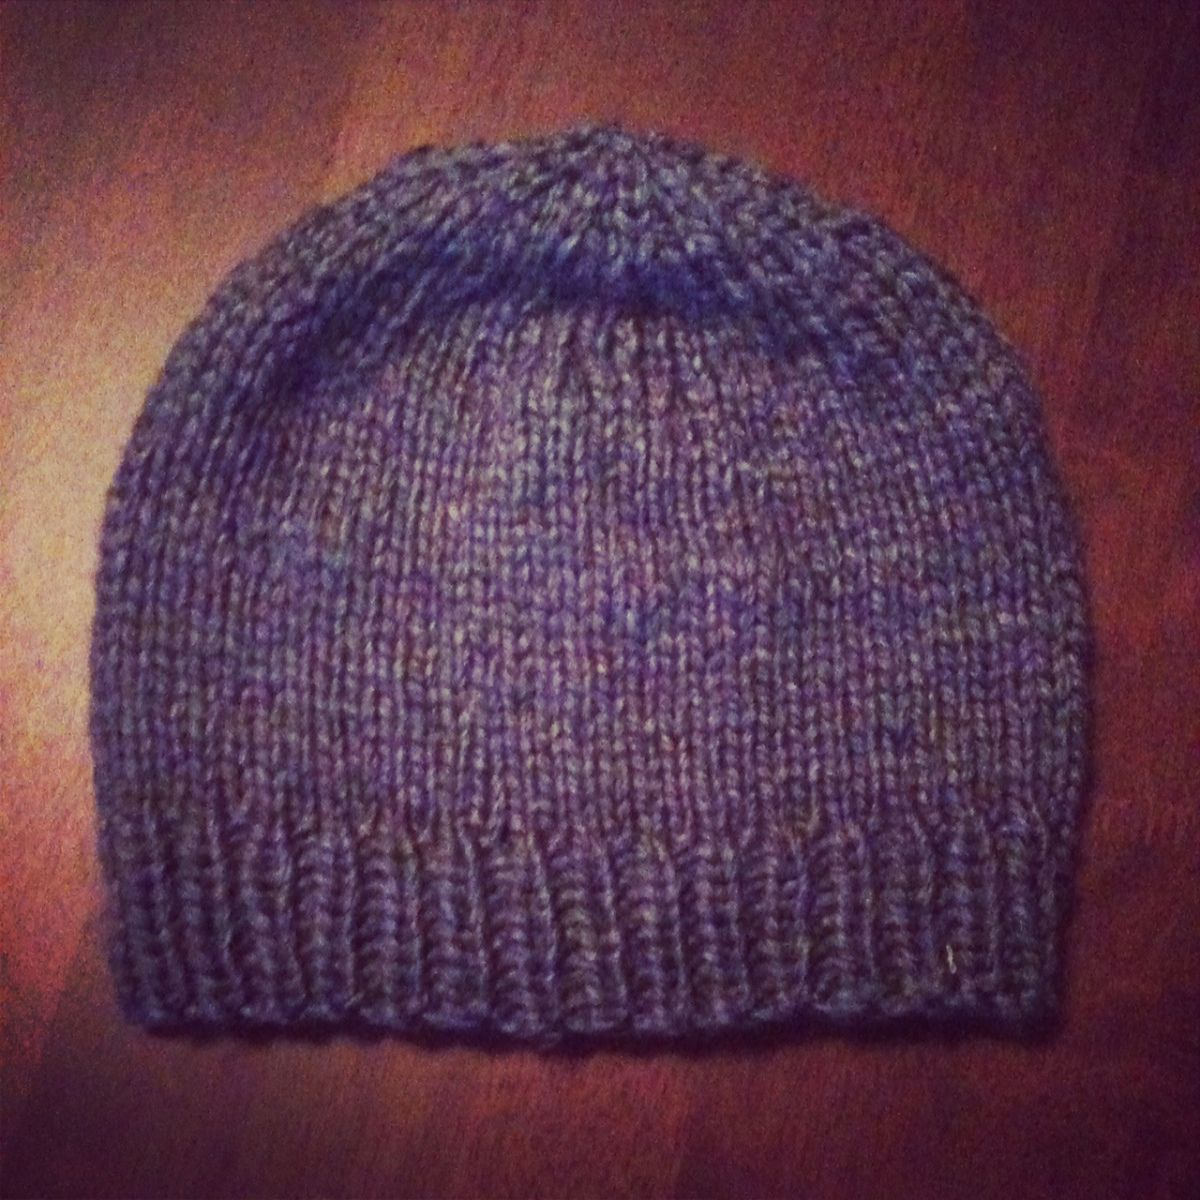 Quick Knit: Basic Toque | Knitting, Quick knits, Knitting ...